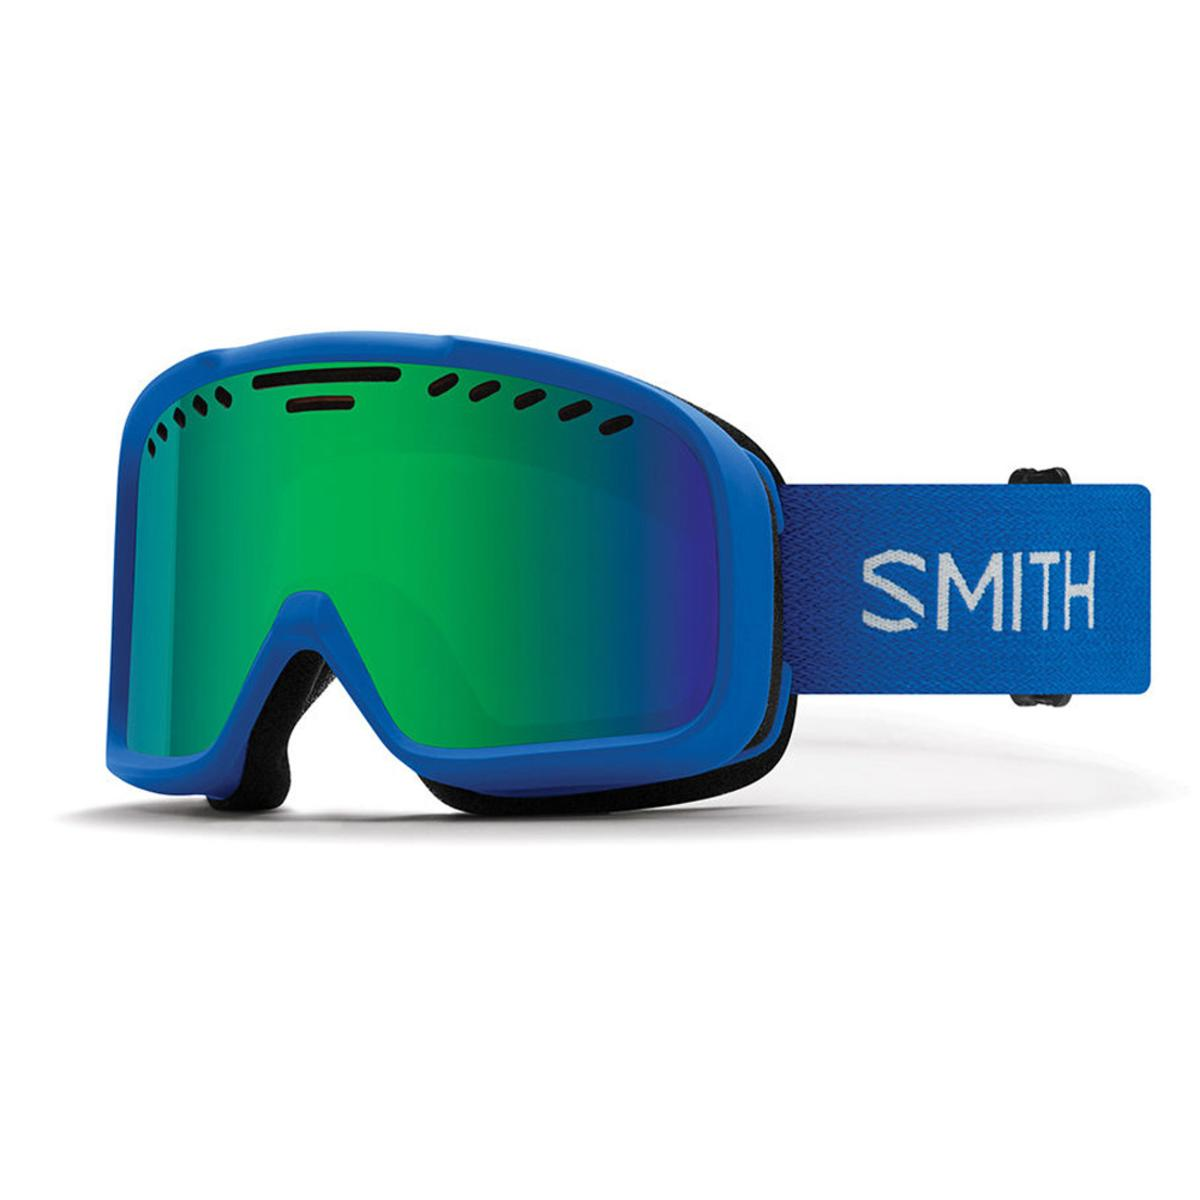 214ebfa853988 Smith Optics Project Snow Goggles - Imperial Blue Frame - The Warming Store